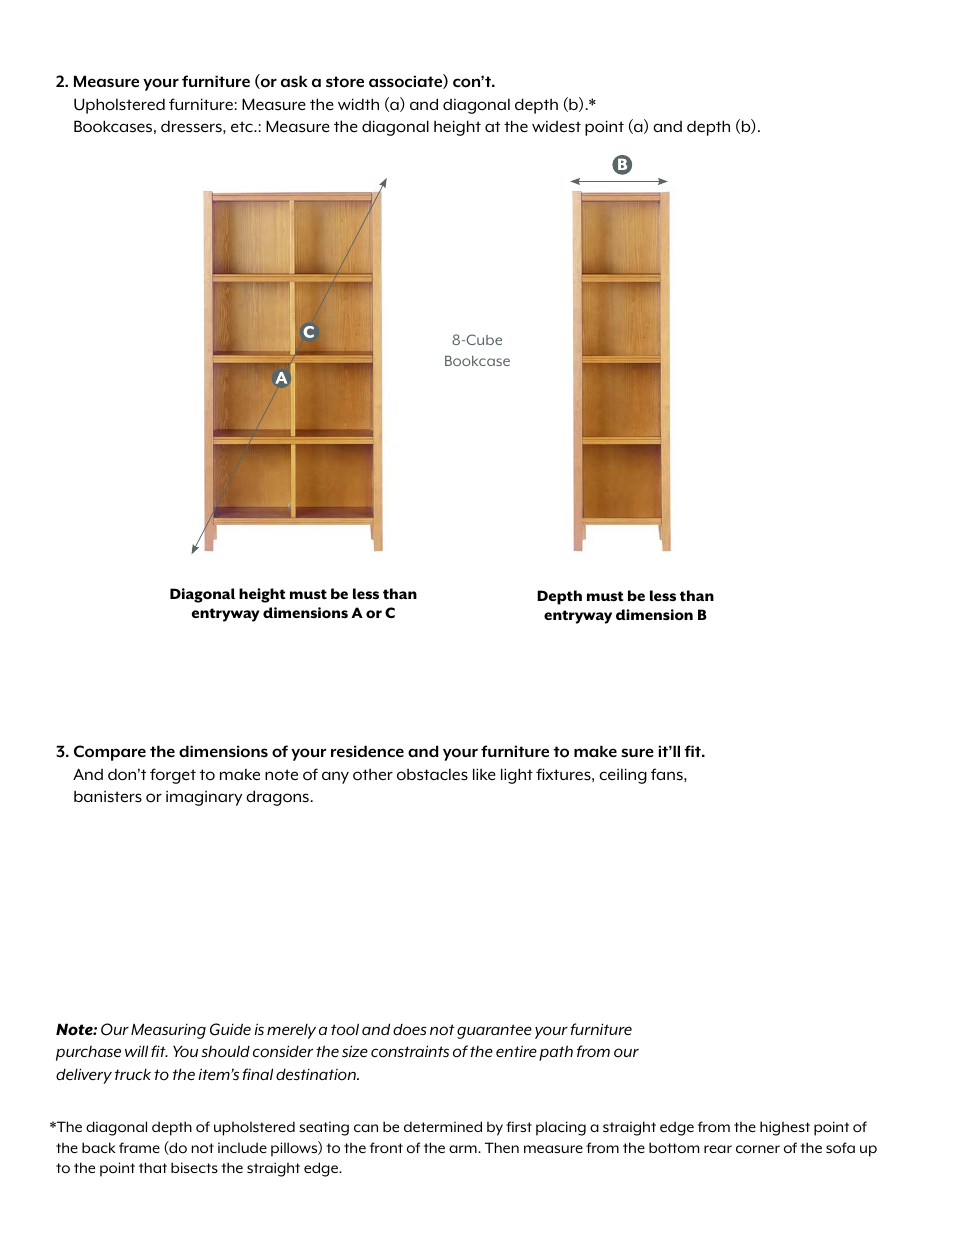 Land of nod silhouette daybed user manual page 2 2